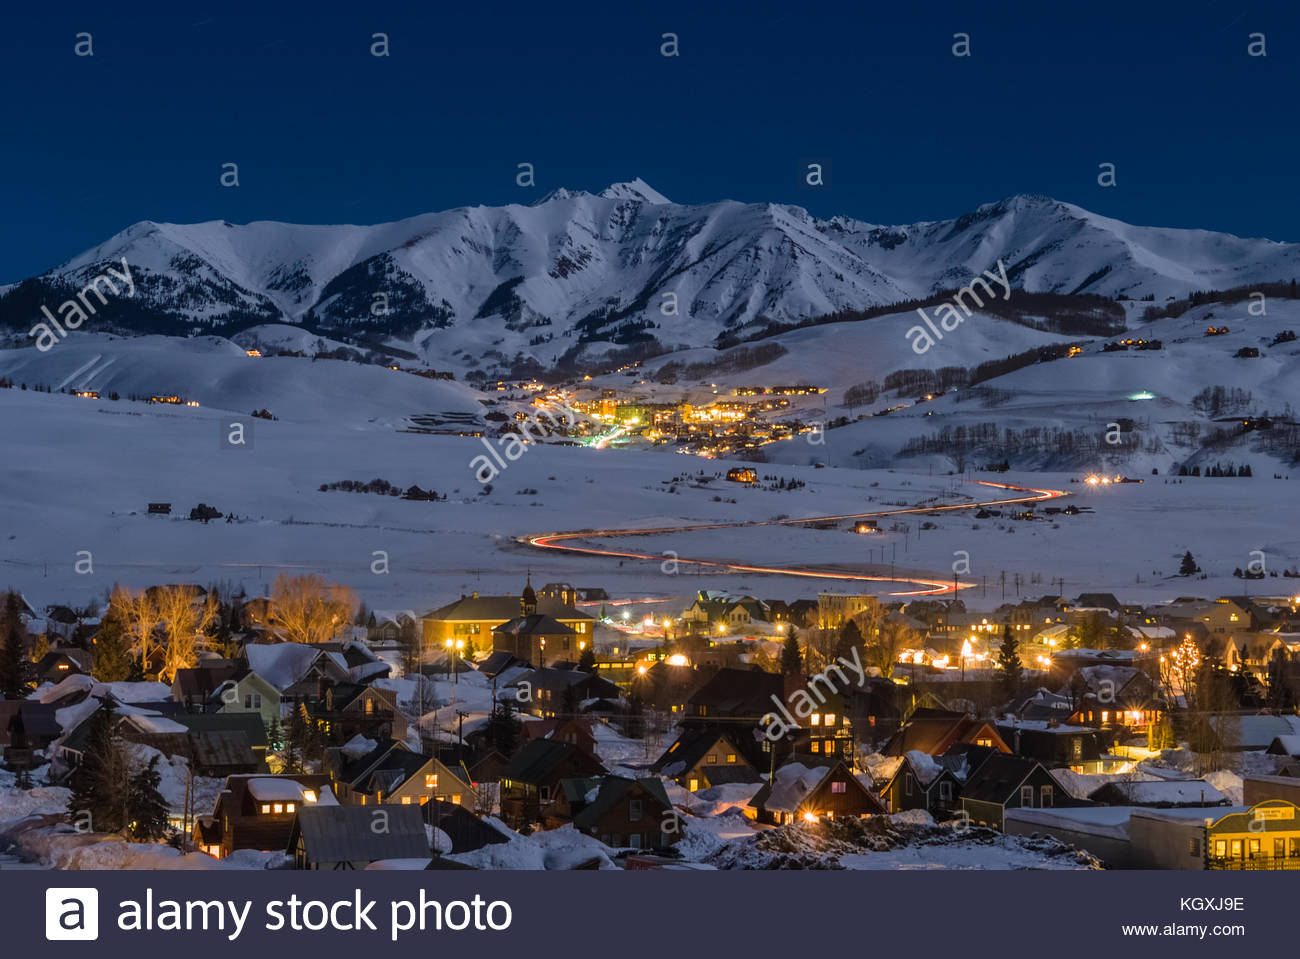 The towns of Crested Butte and Mount Crested Butte, Colorado on a cold winter night illuminated by the light of - Stock Image